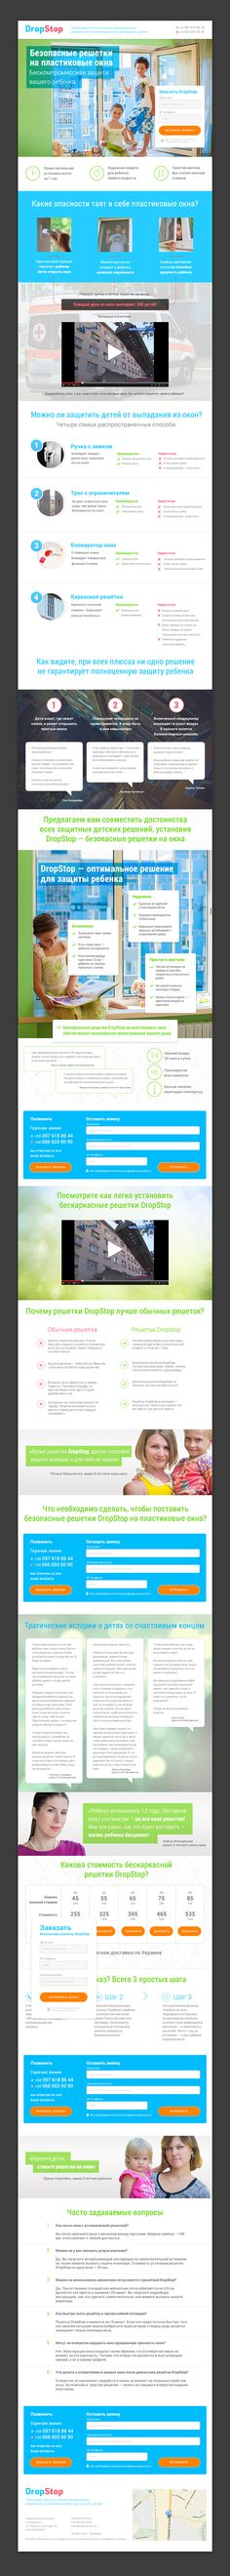 Drop Stop landing page /flyer /banner on Behance